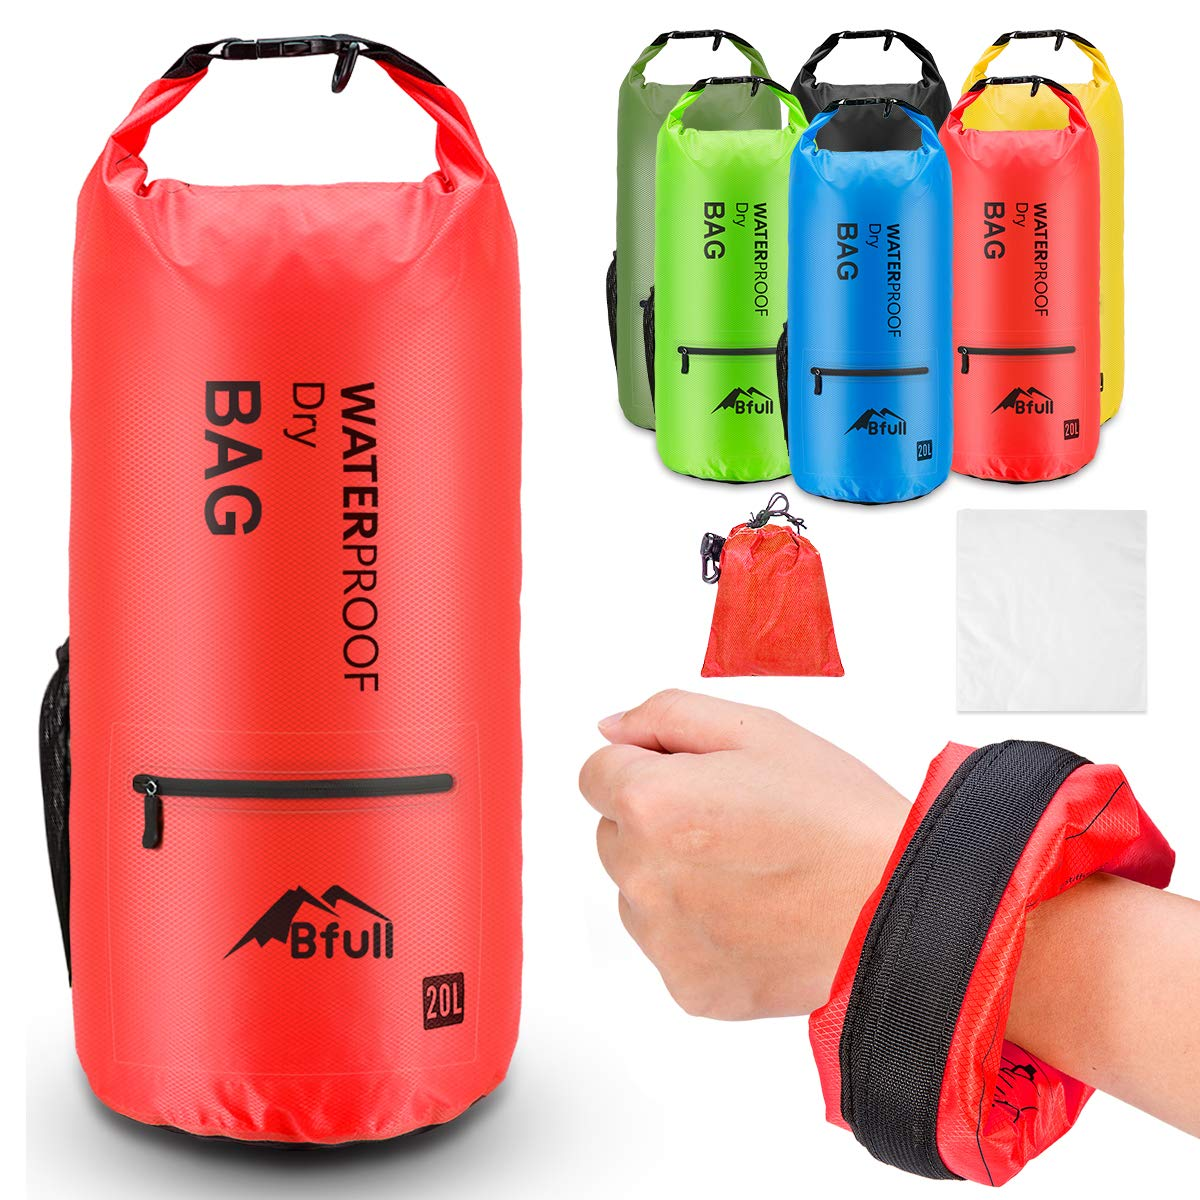 BFULL Waterproof Dry Bag 5L/10L/20L/30L/40L [Lightweight Compact] Roll Top Water Proof Backpack with 2 Exterior Zip Pocket for Kayaking, Boating, Duffle, Camping, Floating, Rafting, Fishing (Orange) by BFULL